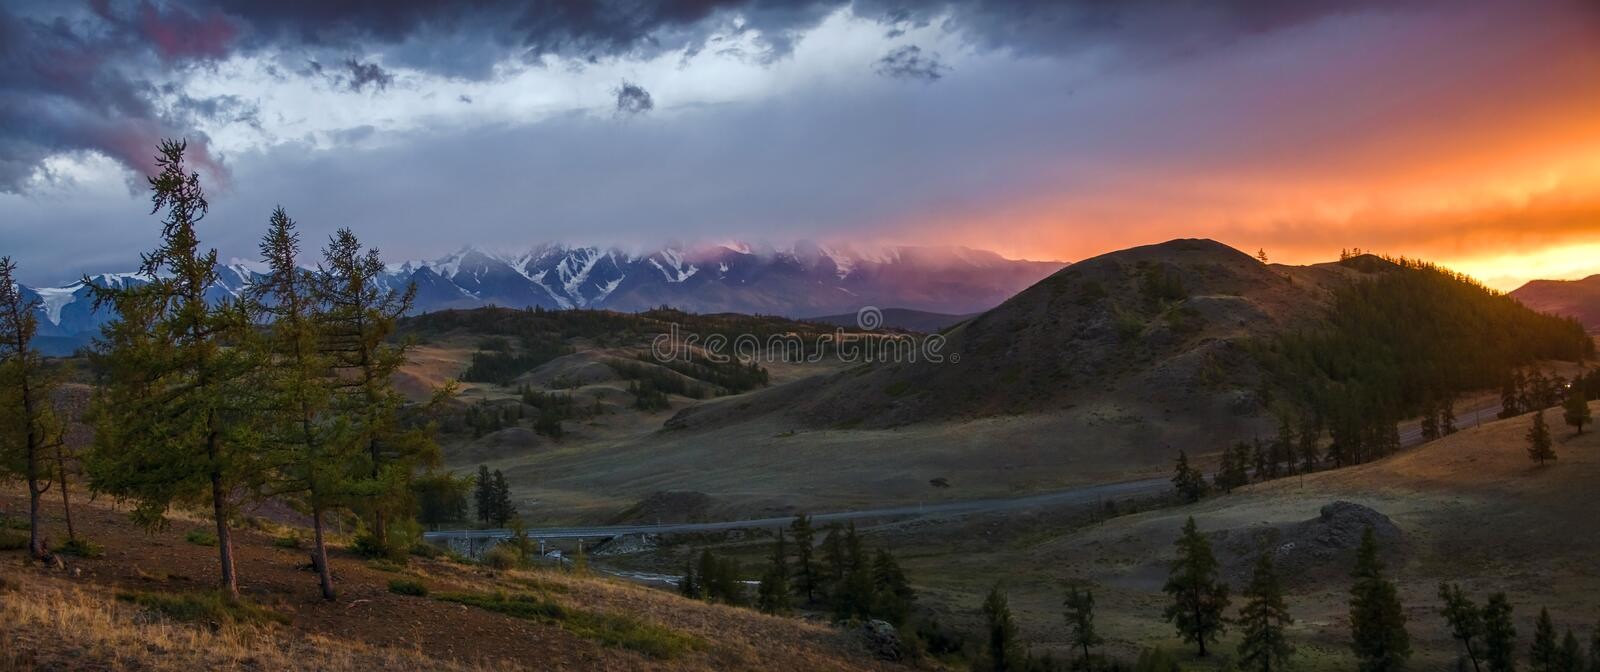 Altai, Ukok plateau. Beautiful sunset with mountains in the background. Snowy peaks autumn. Journey through Russia, Altay stock photos